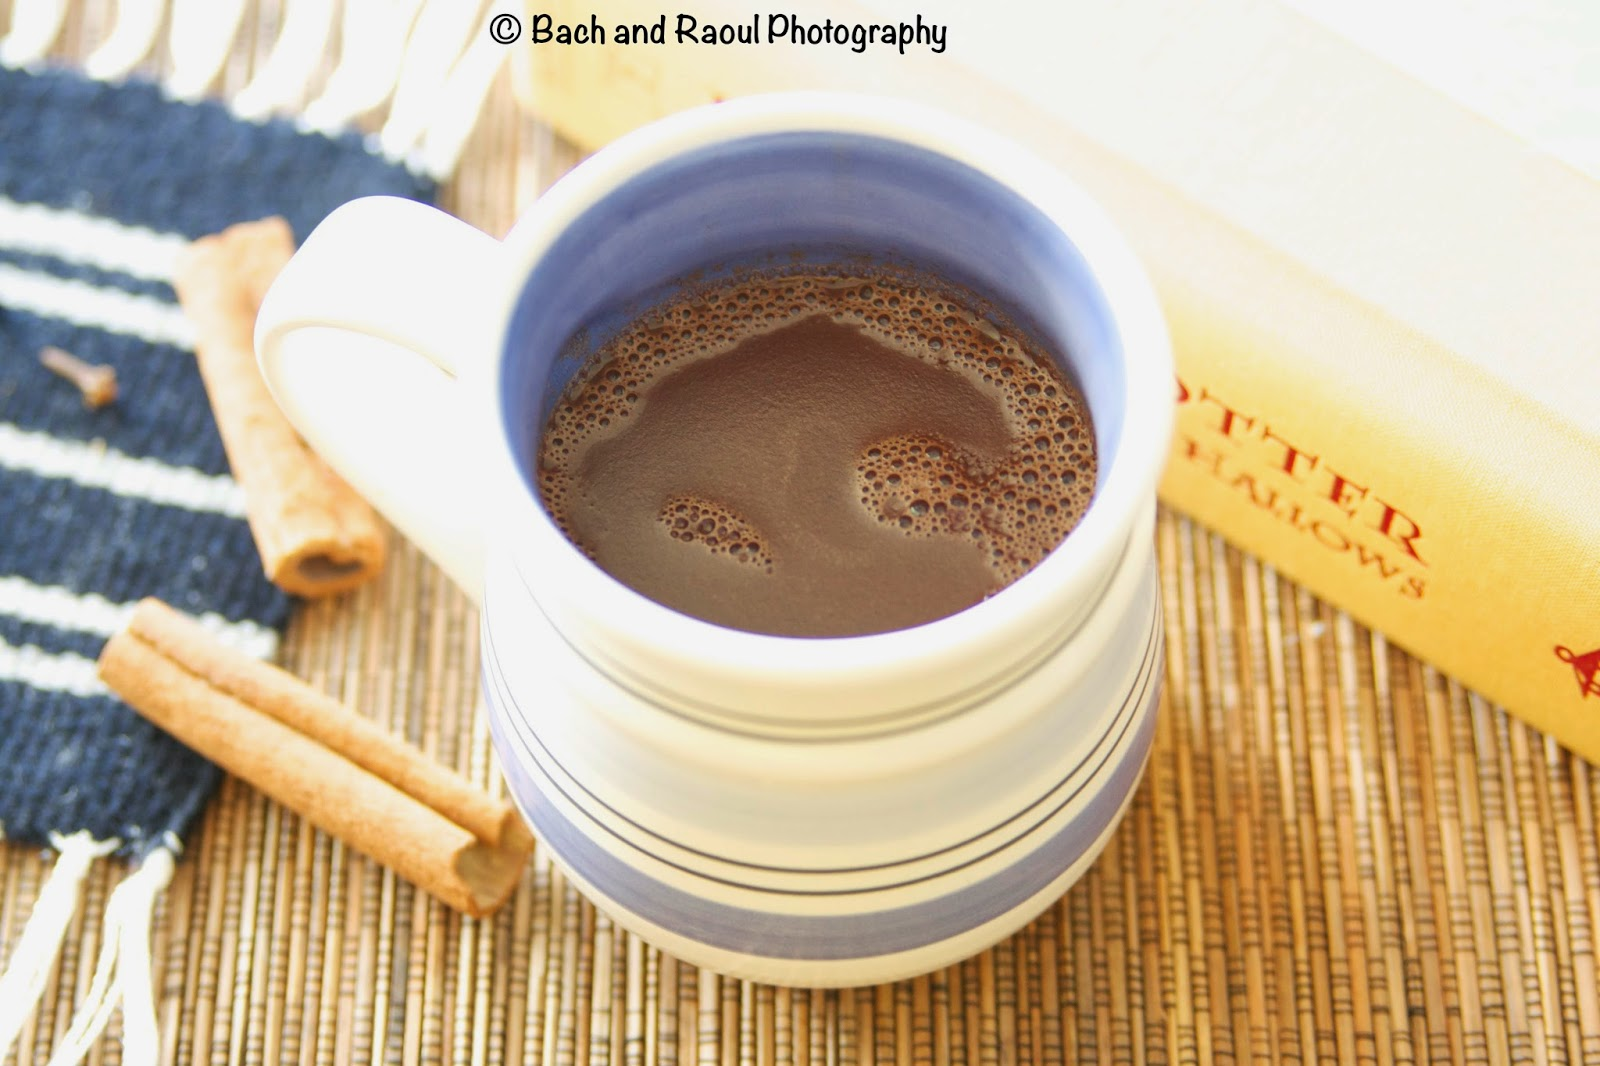 Bolivian Spiced Hot Chocolate - Rich, dark and decadent